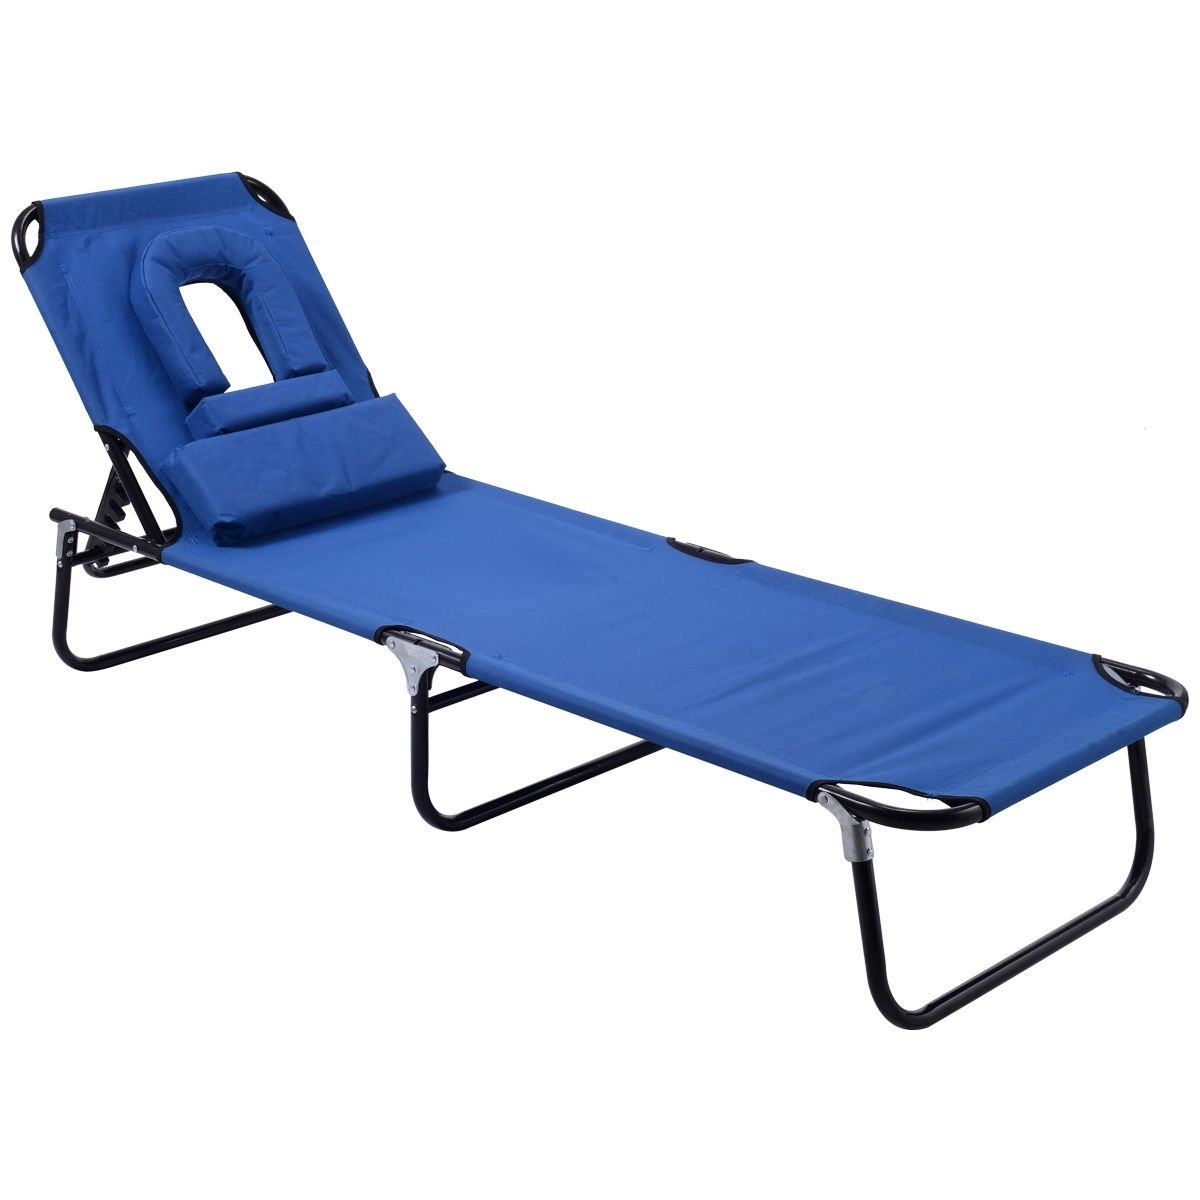 Ostrich Chaise Lounges Within Preferred Amazon: Goplus Folding Chaise Lounge Chair Bed Outdoor Patio (View 14 of 15)